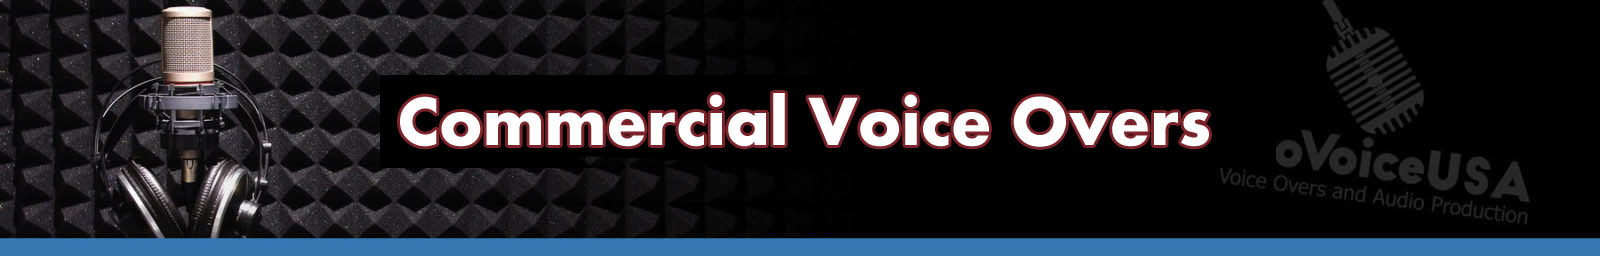 Commercial Voice Overs header